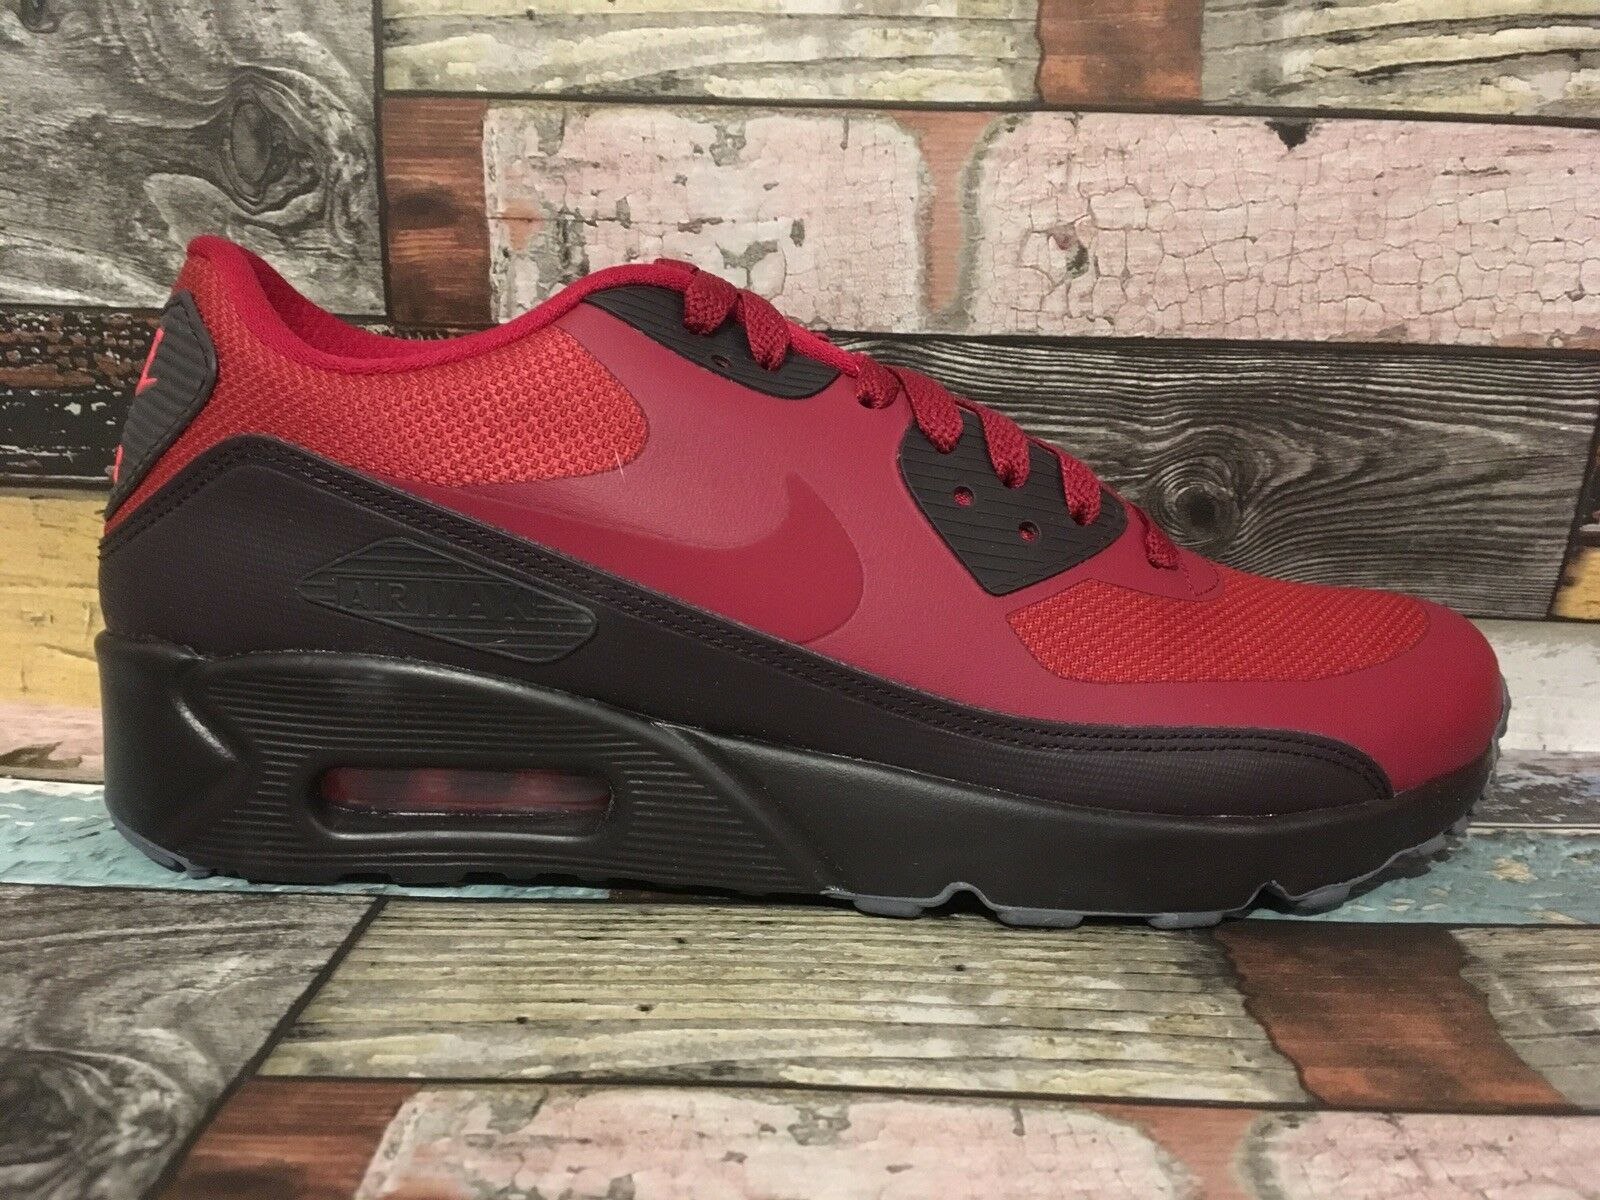 1Q NIKE AIR MAX 90 ULTRA 2.0 ESSENTIAL   US 7   875695-602 NOBLE RED